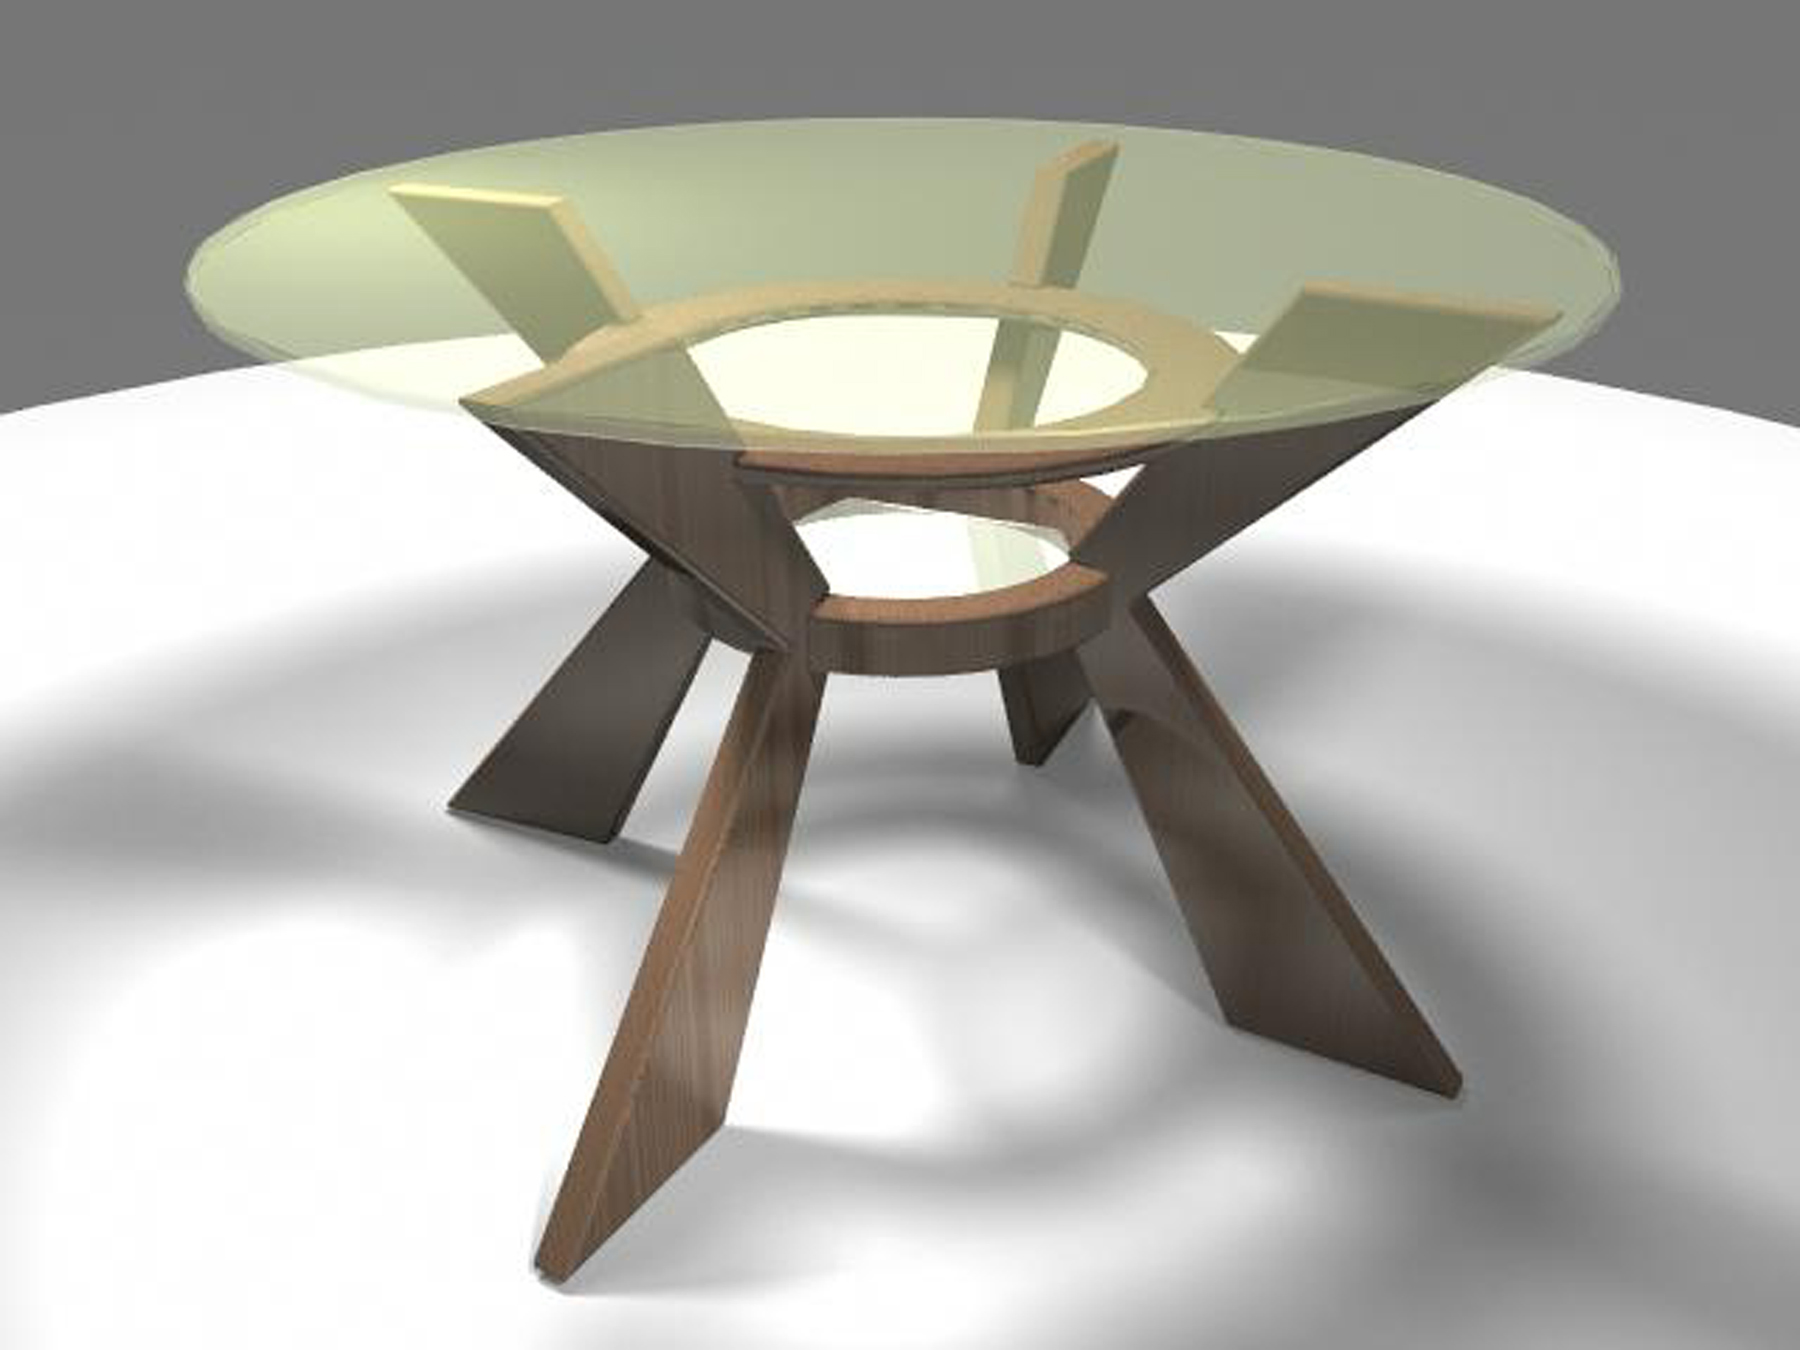 Halo Contemporary Dining Room Table